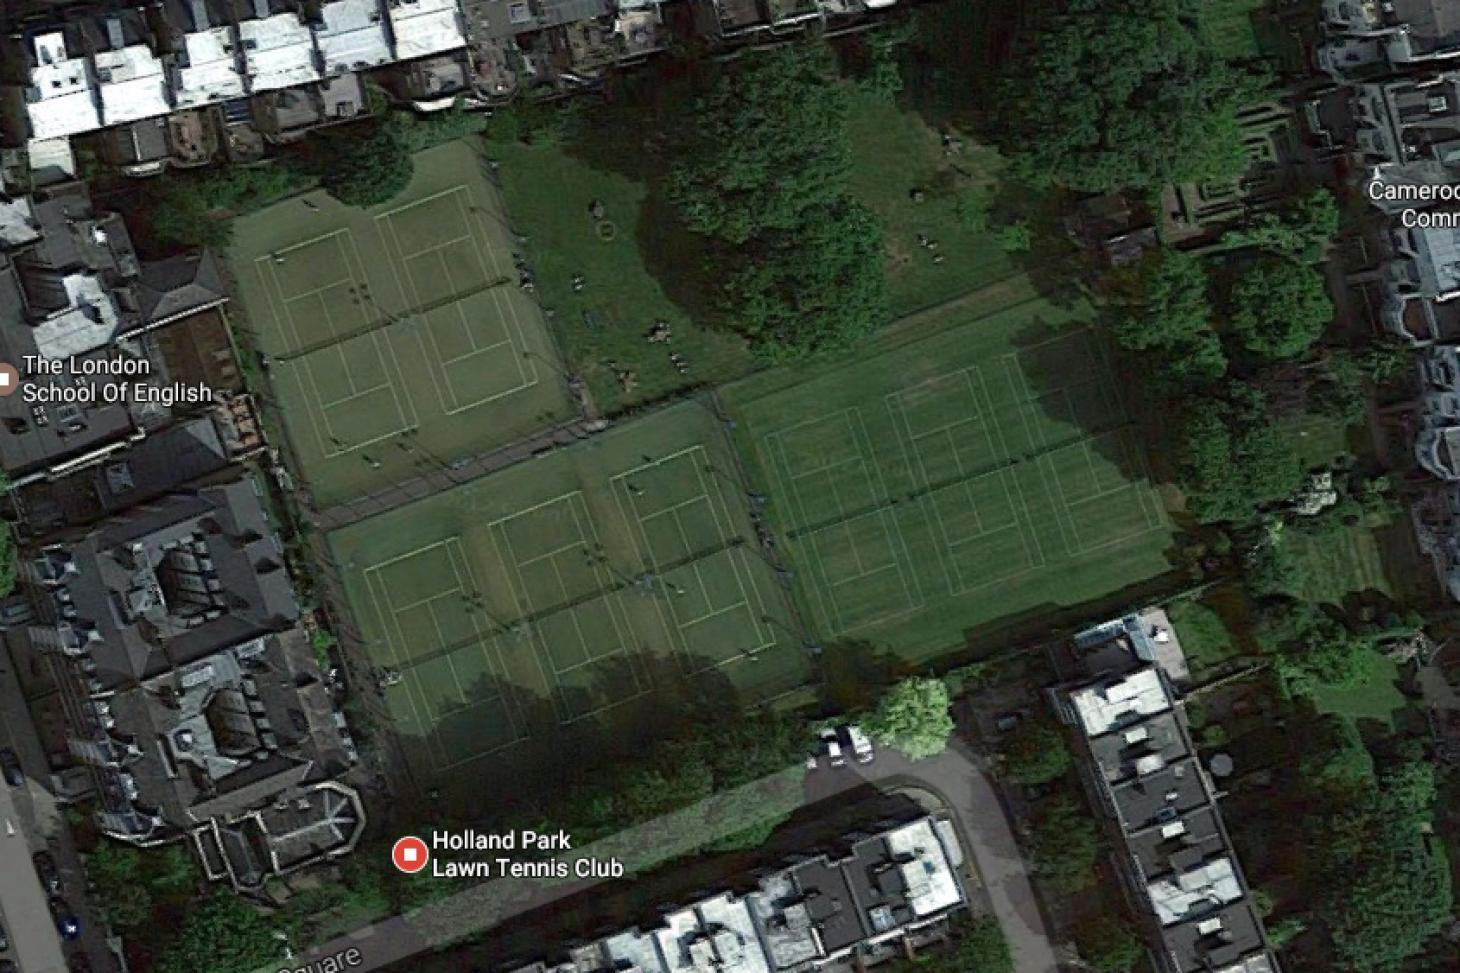 Holland Park Lawn Tennis Club Outdoor | Grass tennis court